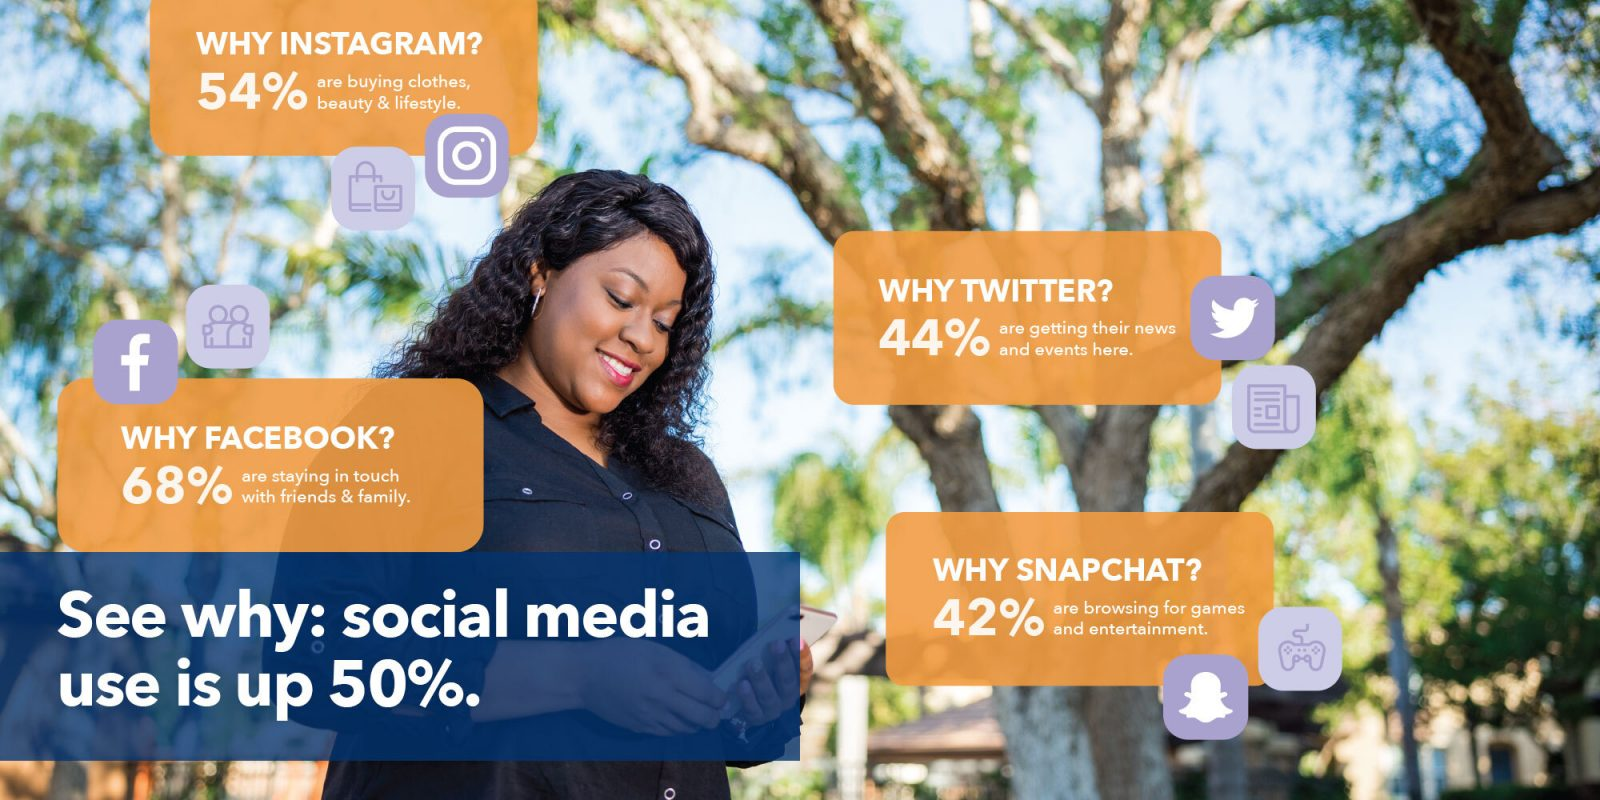 See why: social media use is up 50%.